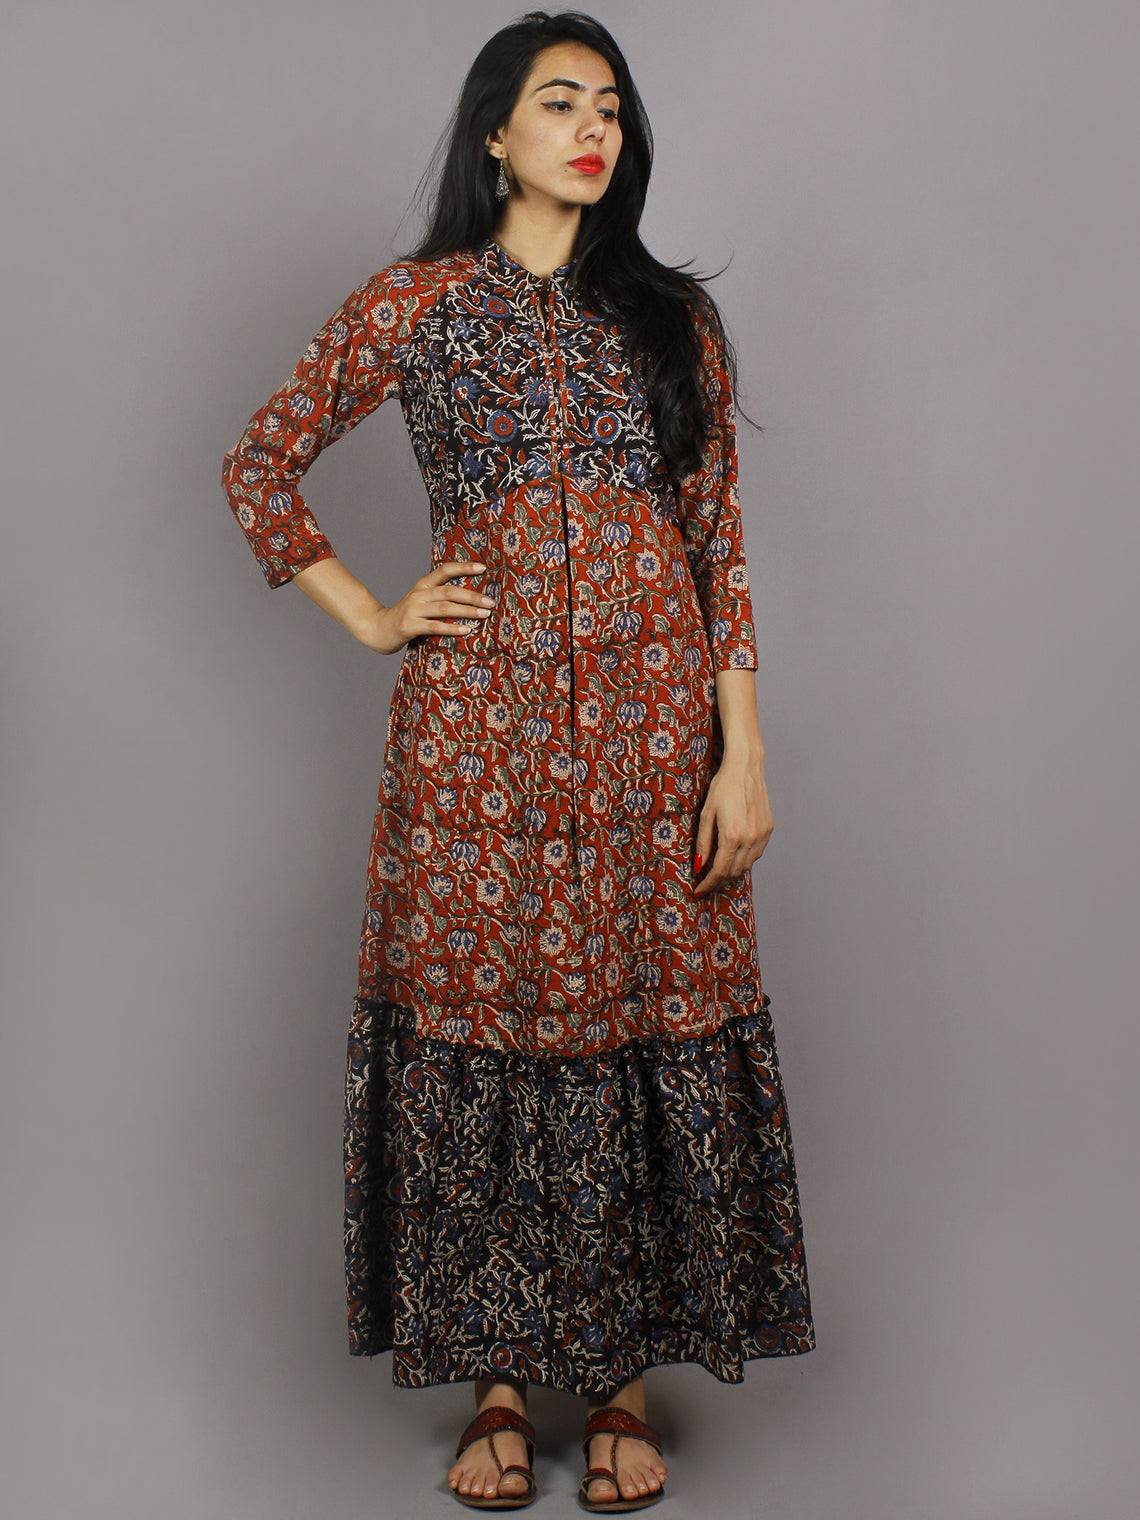 Red Black Beige Blue Green Hand Block Printed Long Cotton Dress With Mandarin Collar- D3457901